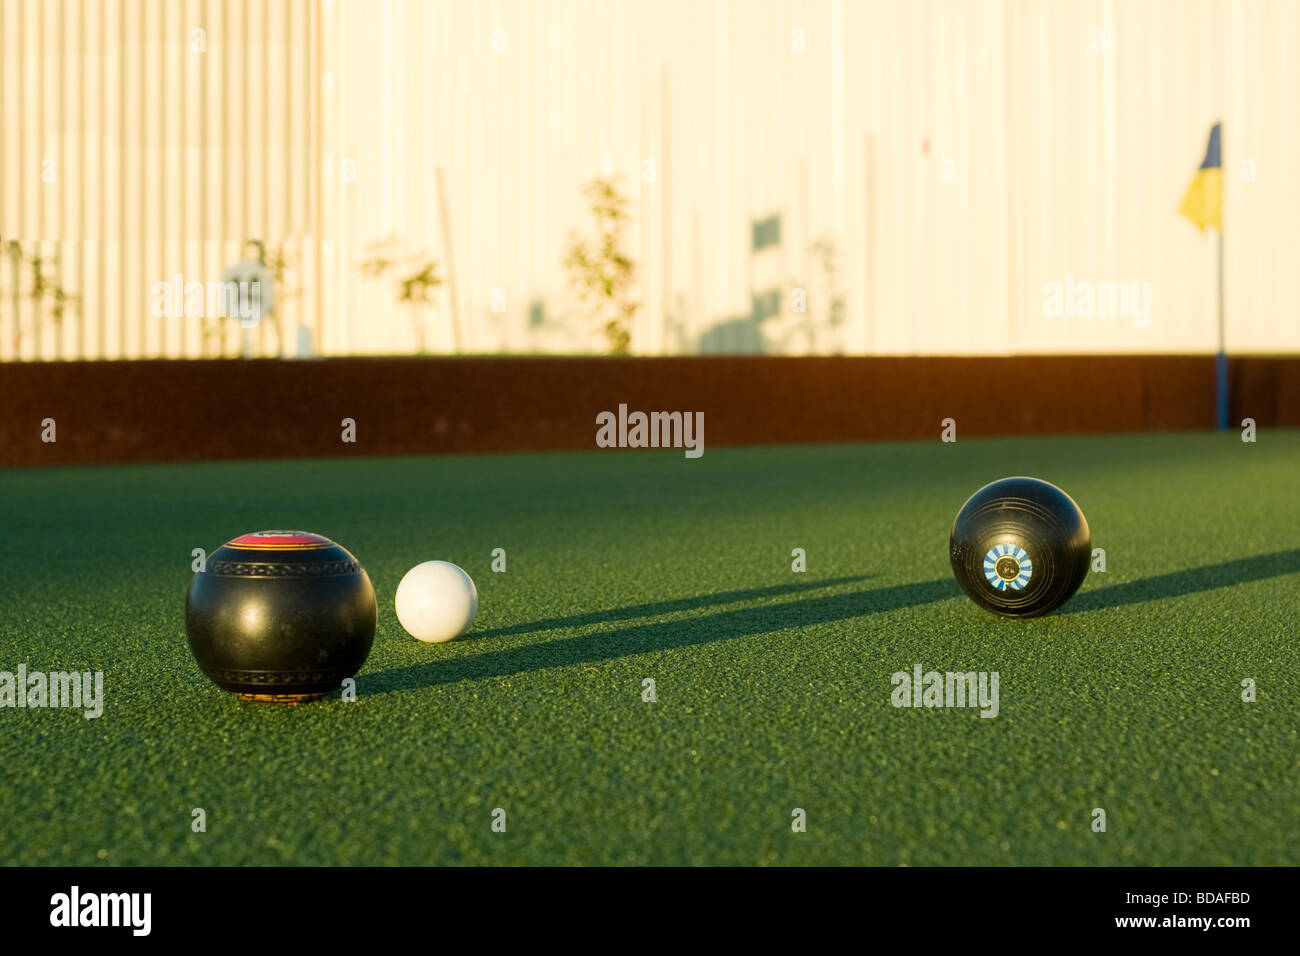 Lawn bowls in late afternoon sun shadows - Stock Image